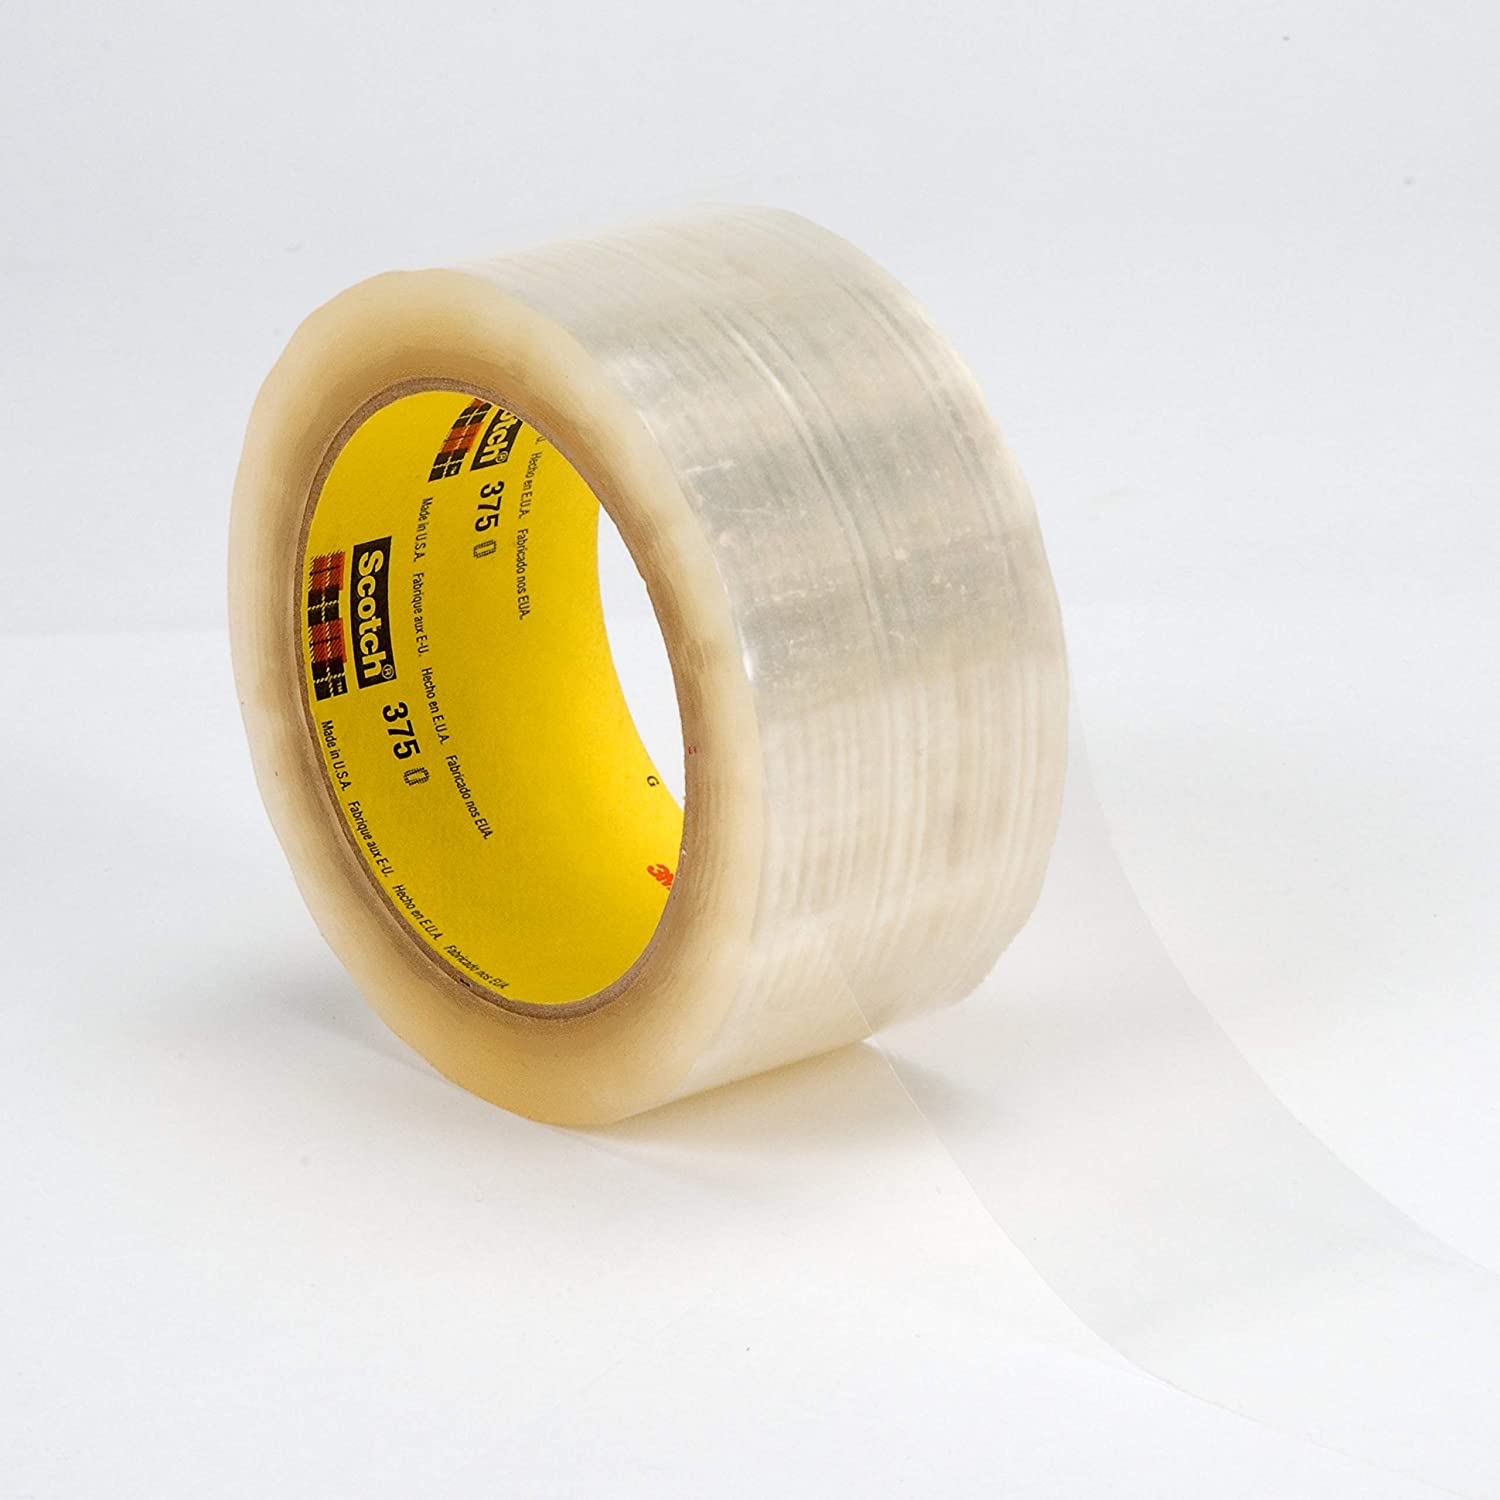 36 Rolls Parcel sellotape Packing Packaging Strong Clear 48mm X 50m 2 Inch